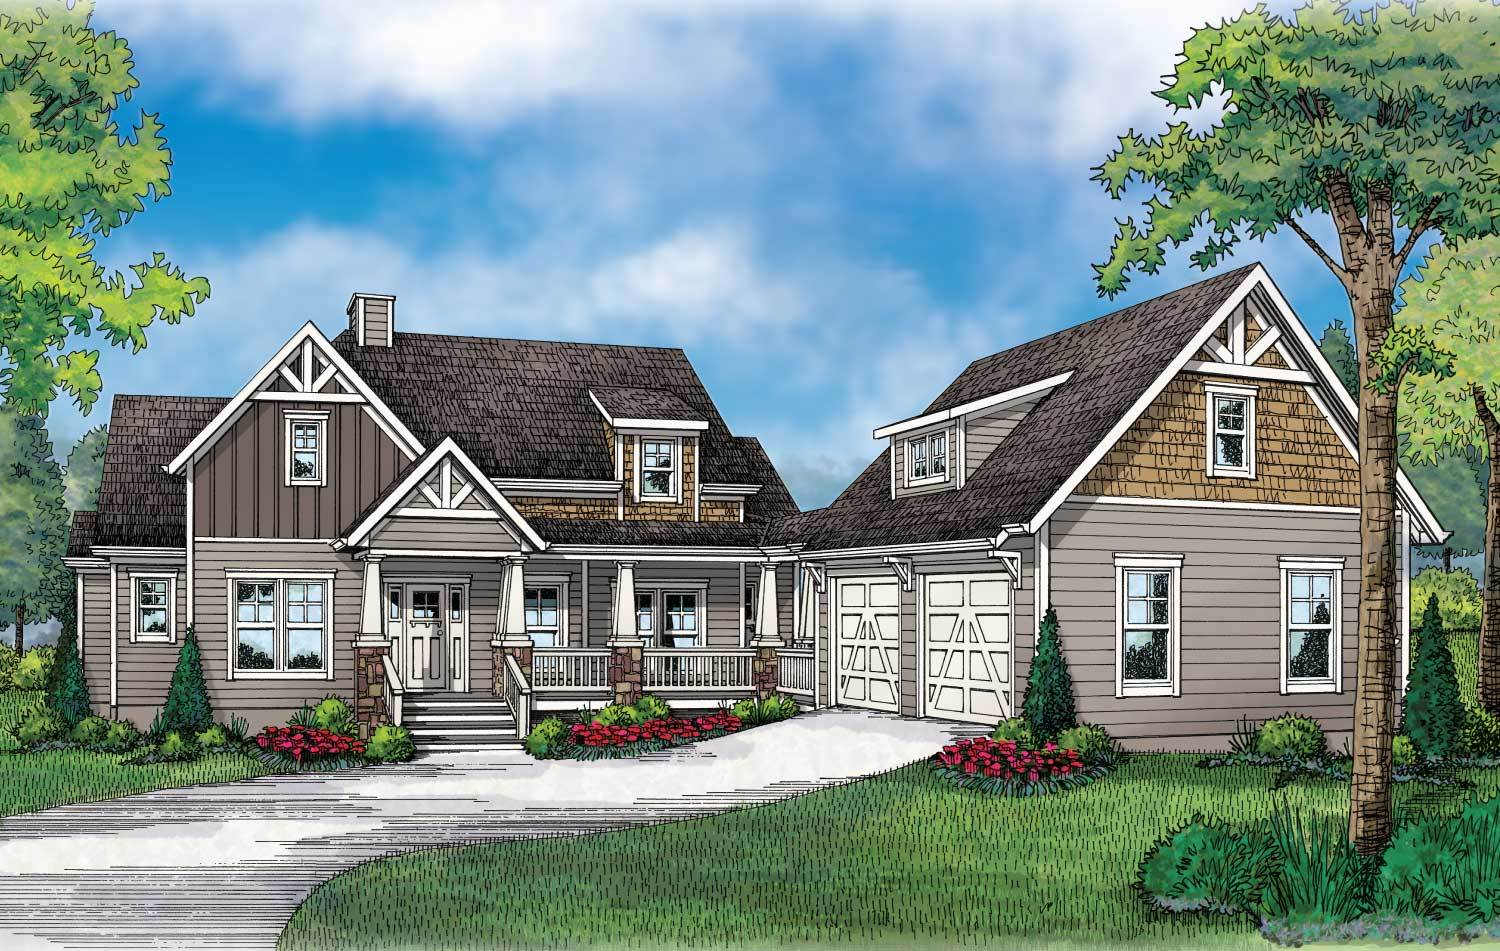 Single Family for Sale at Build On Your Lot - Franklin - Cedar Ridge A 335 Np & L Loop Franklin, North Carolina 28734 United States